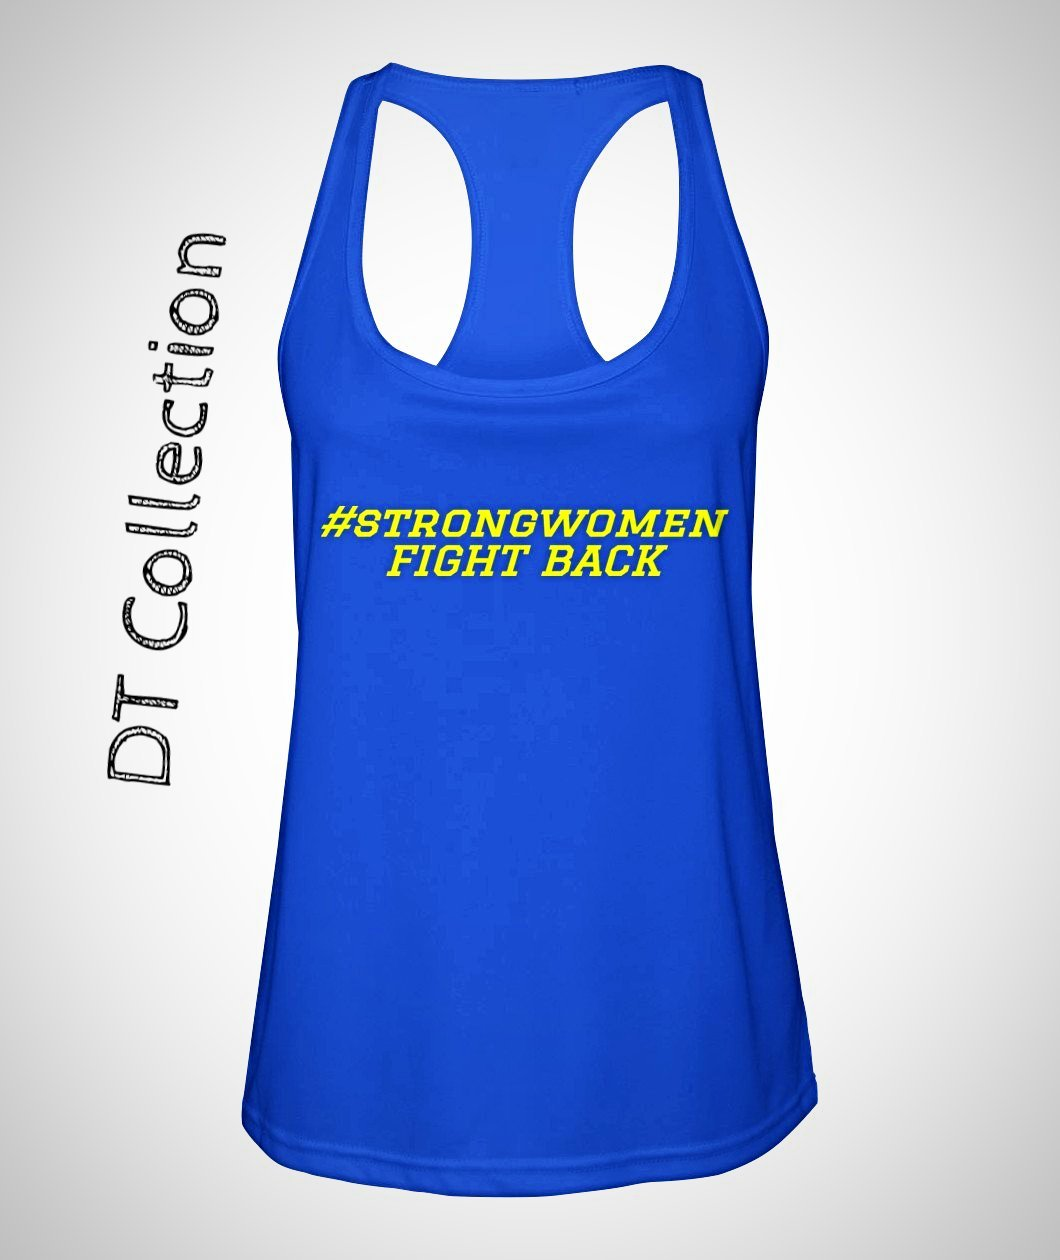 #strongwomen FIGHT BACK Women's Racerback Sport Tank